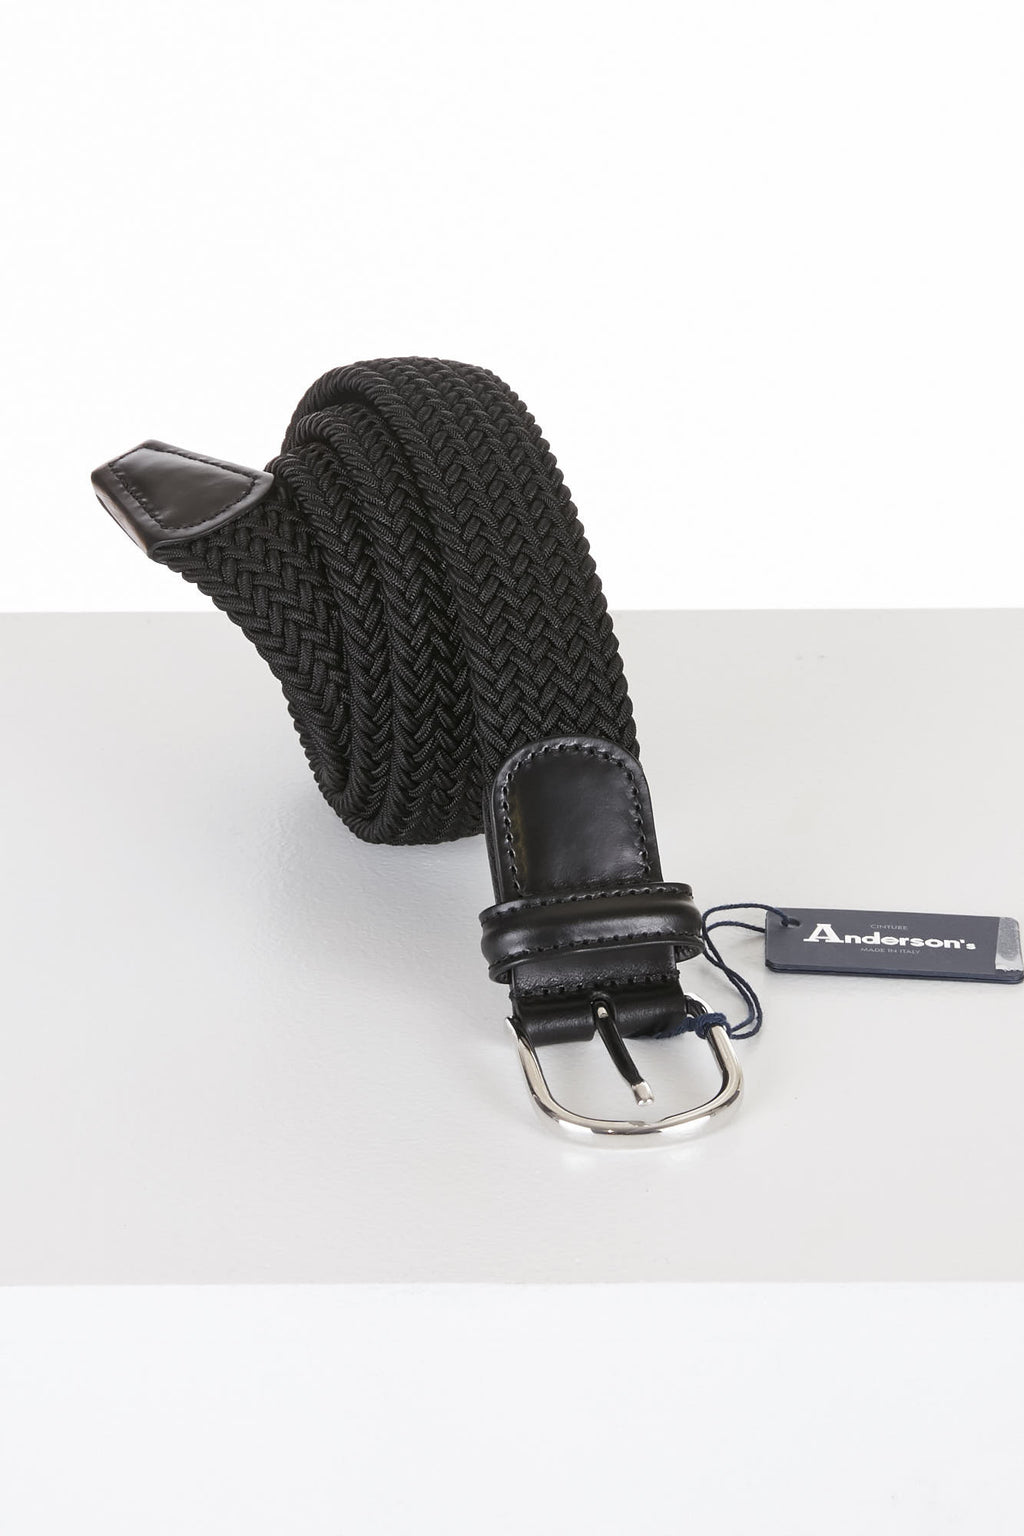 Anderson's Black Stretch Belt - Accessories - Anderson's - LALONDE's